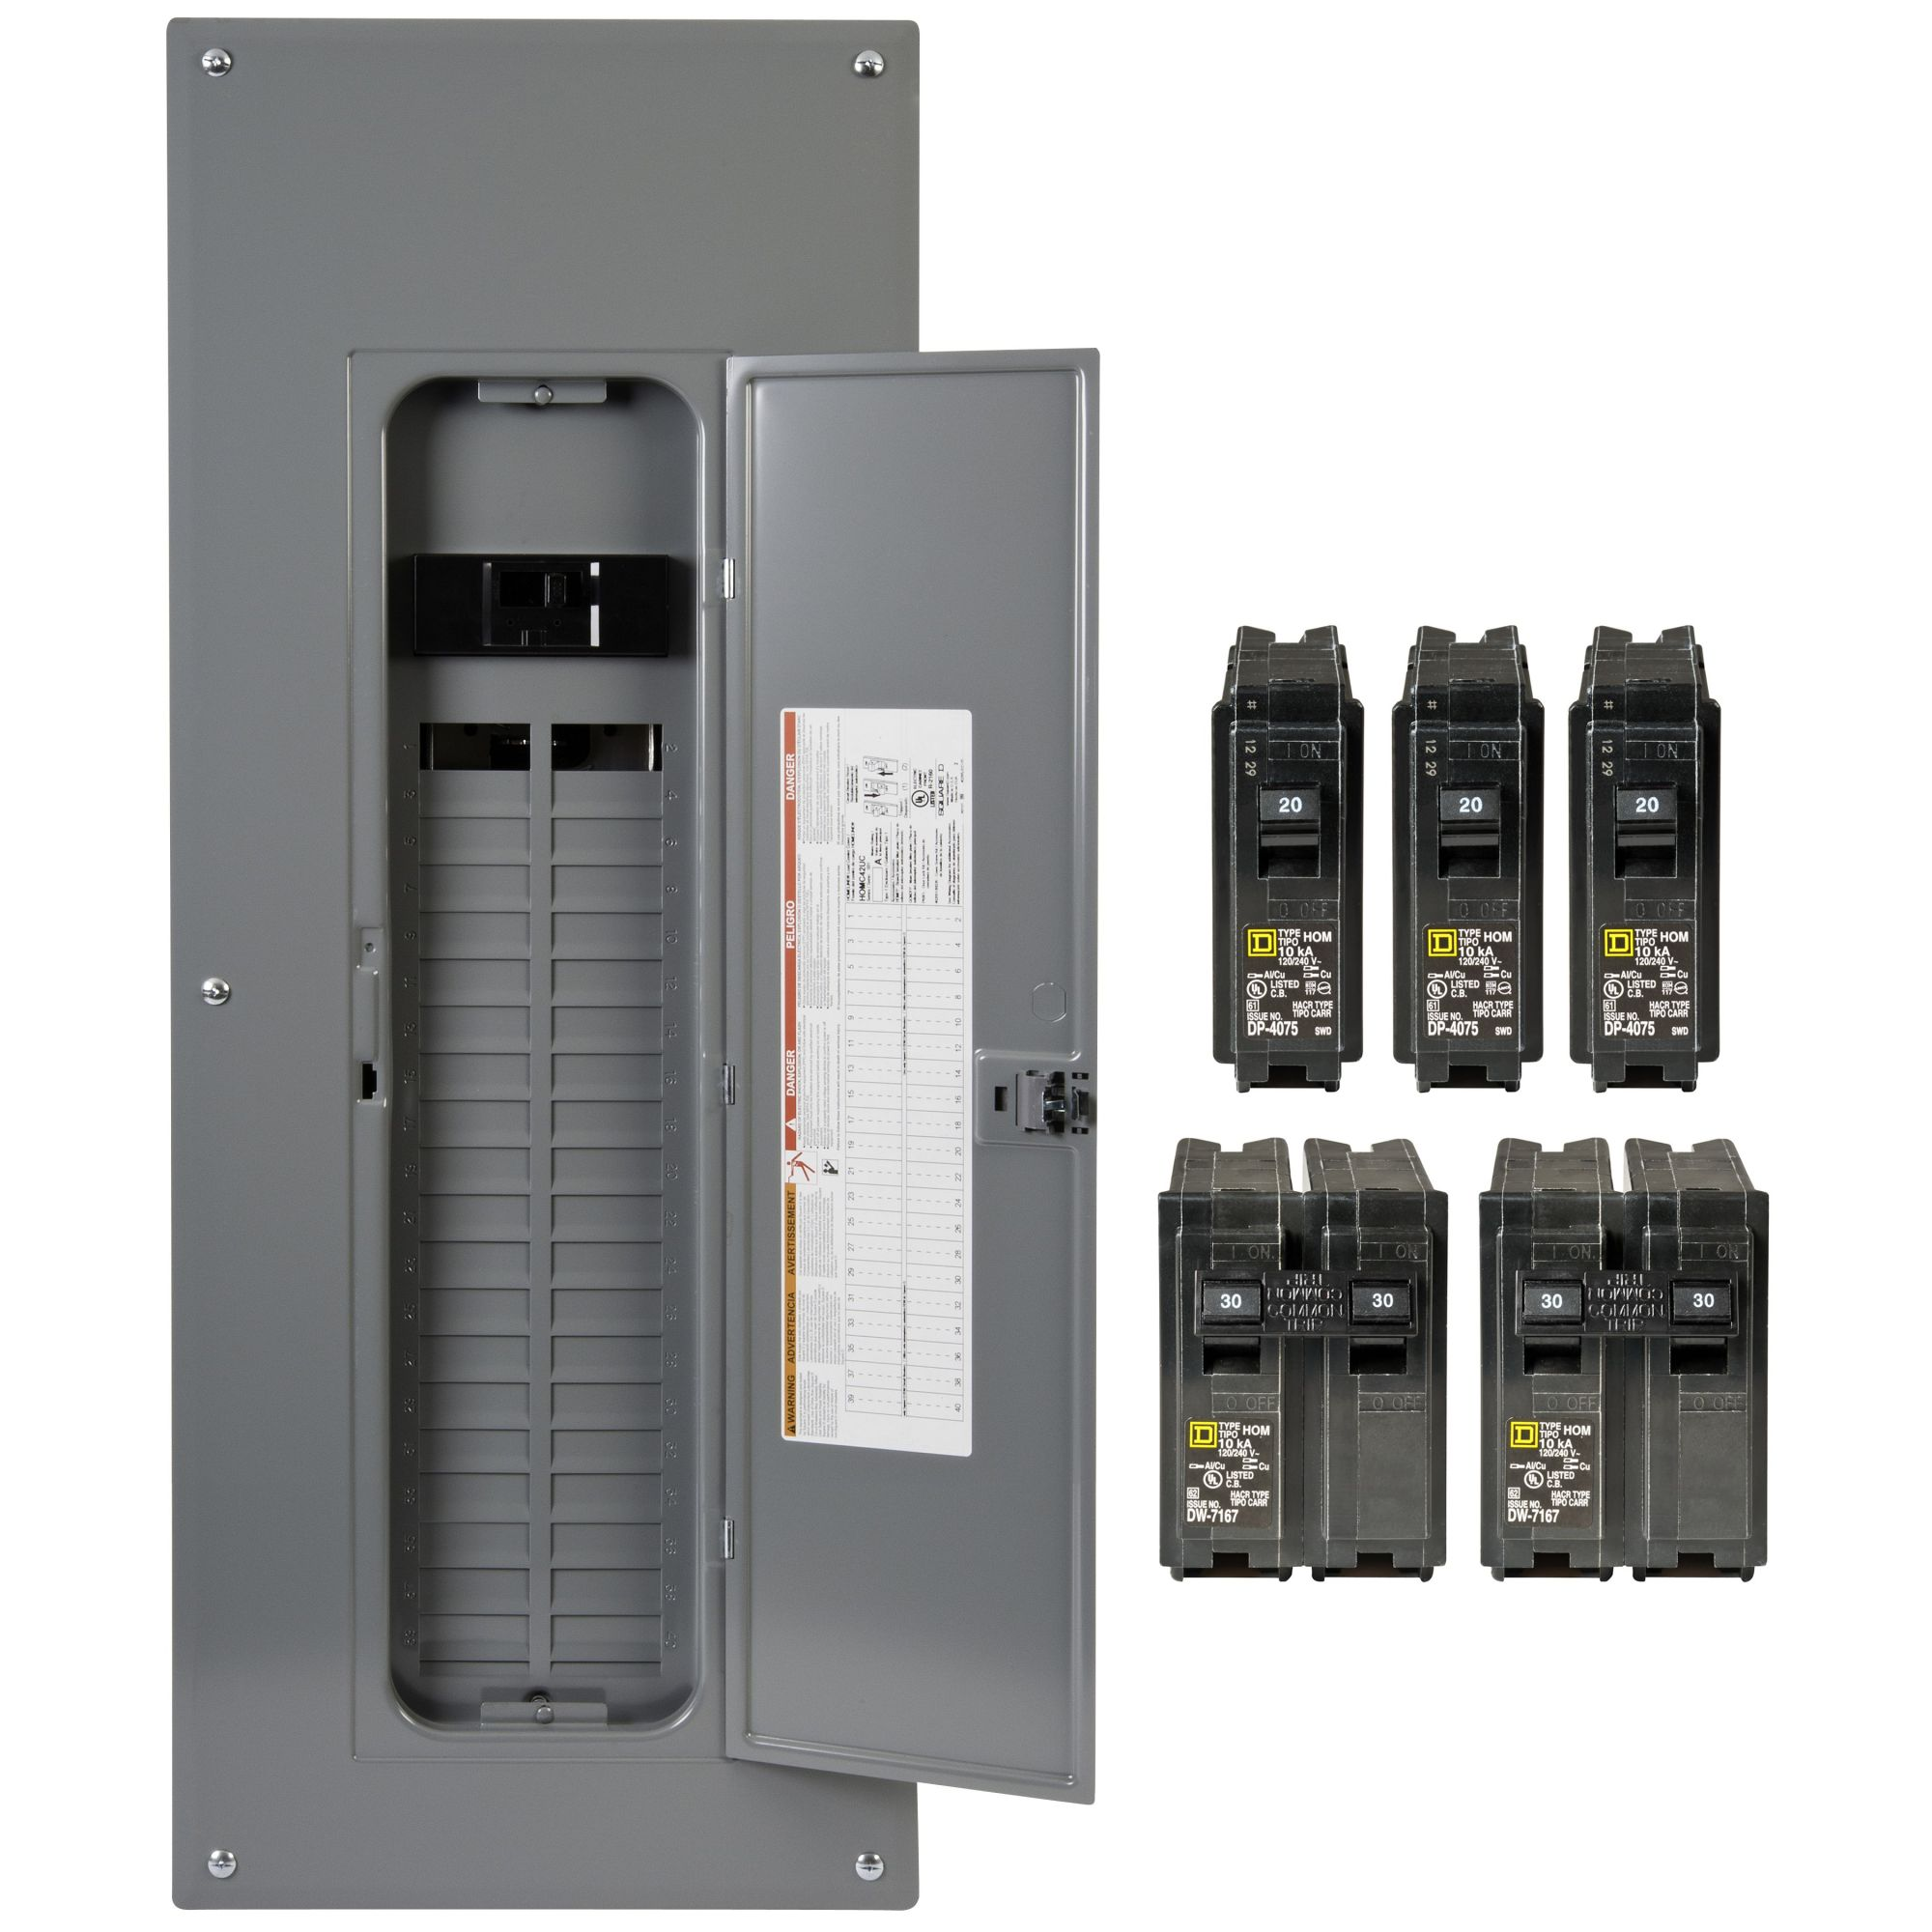 hight resolution of square d homeline load centers and circuit breakers are designed for fast installation reliability and superior circuit protection